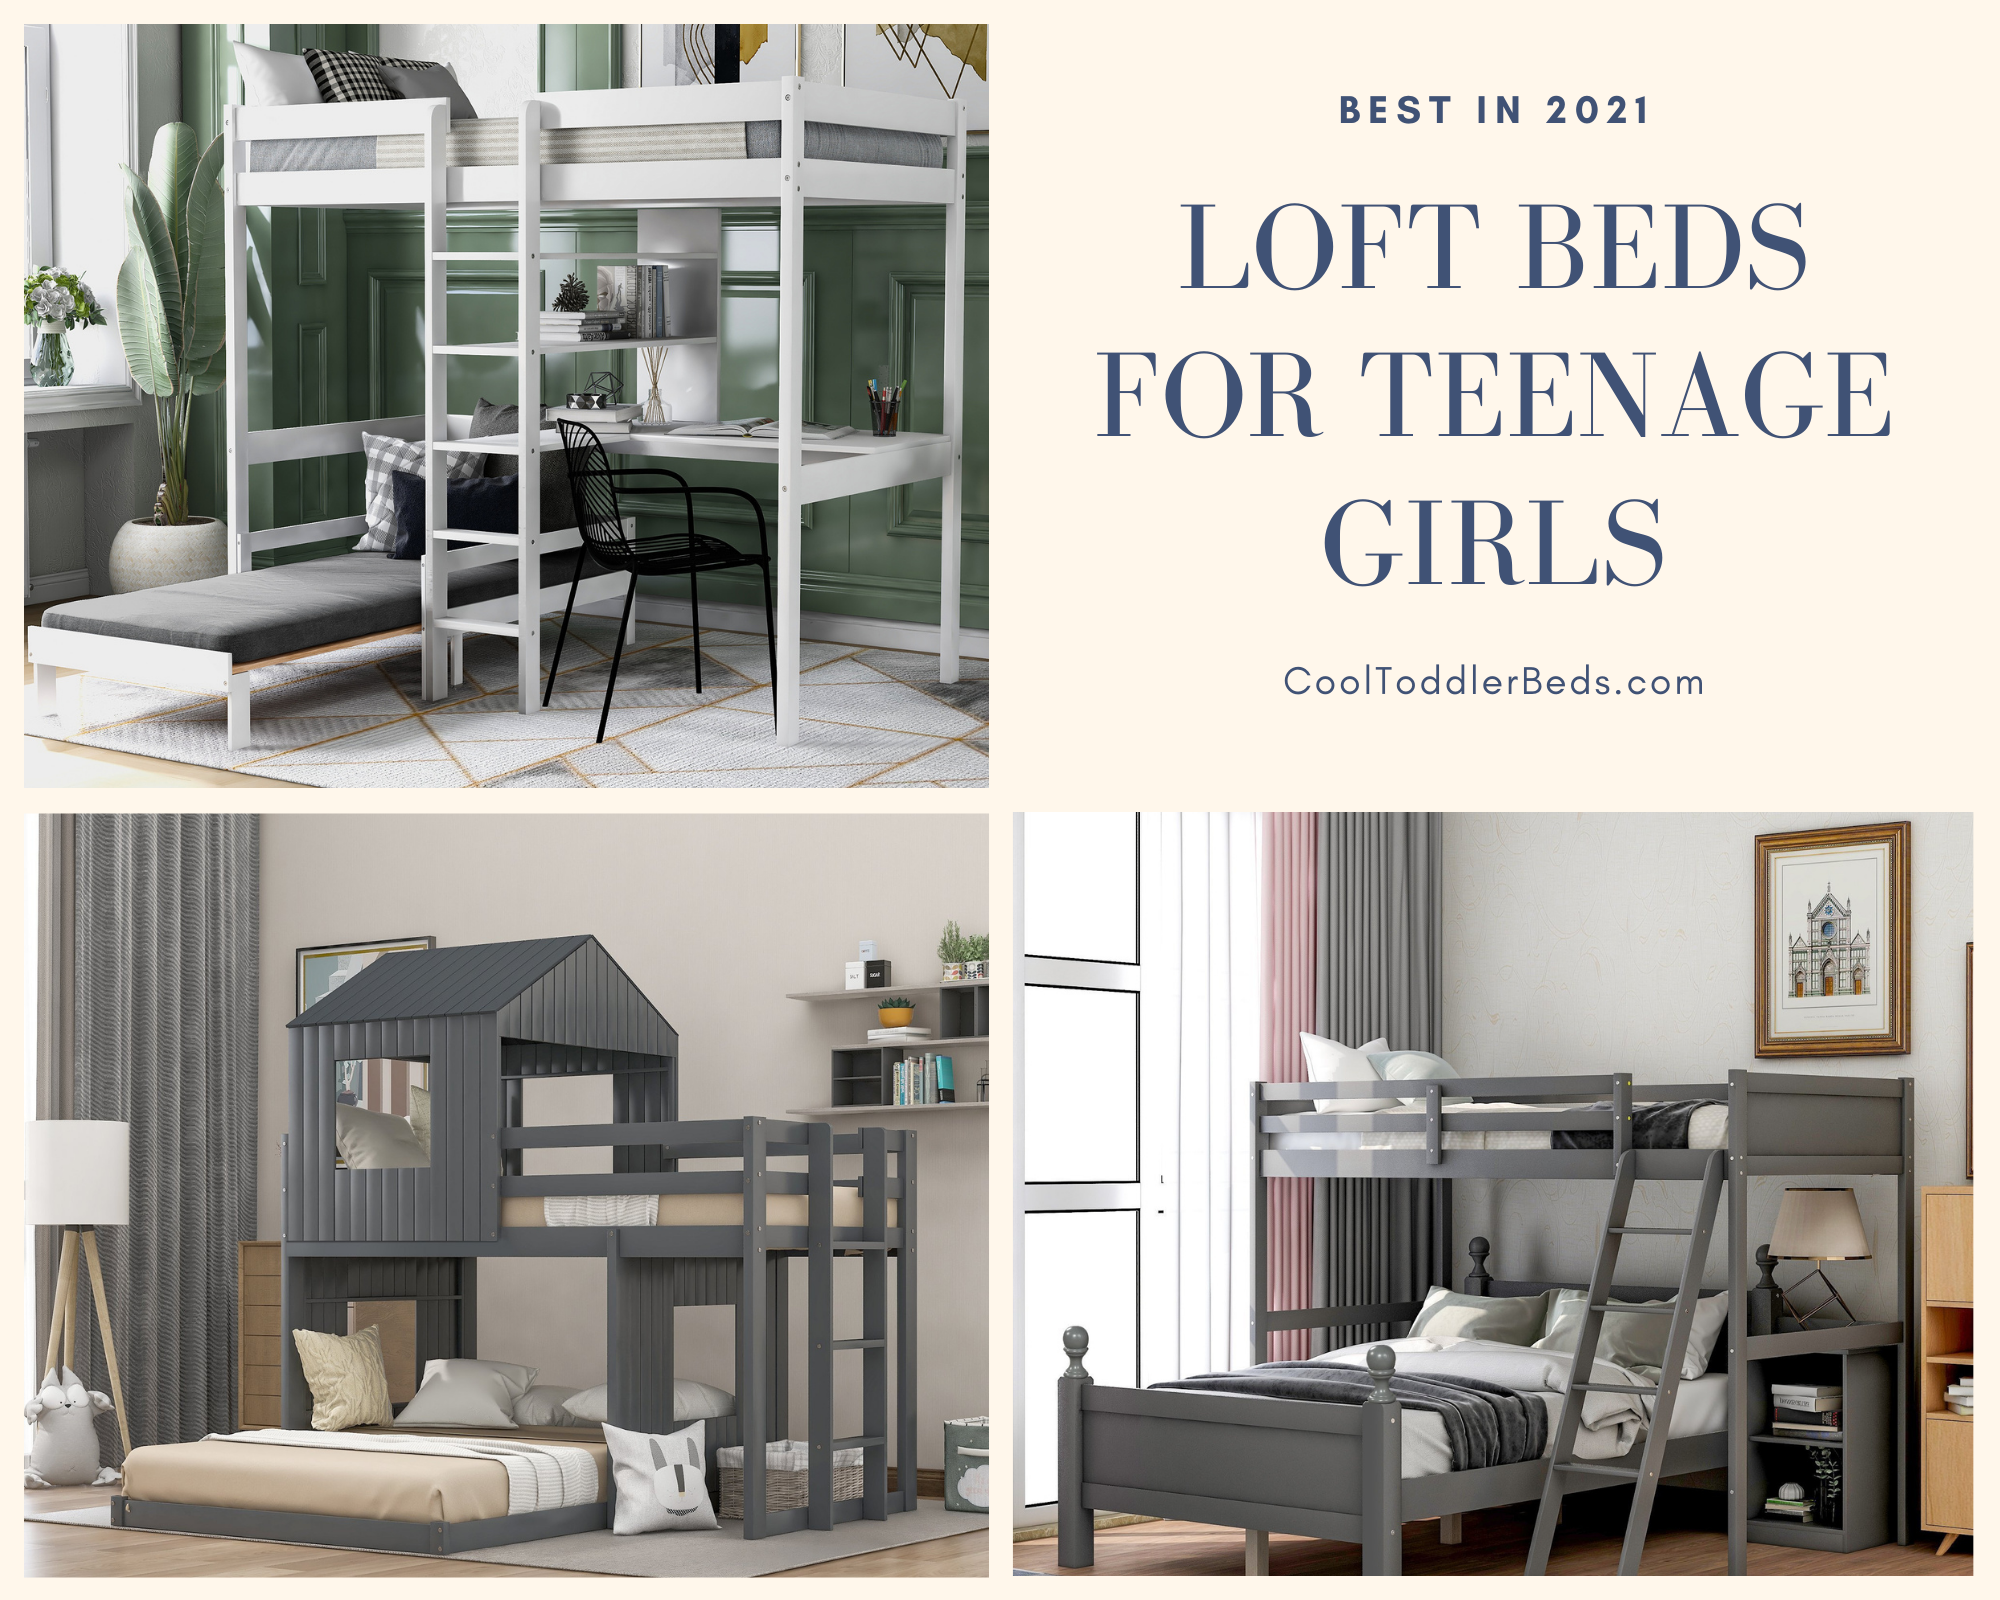 Best Loft Beds For Teenage Girls